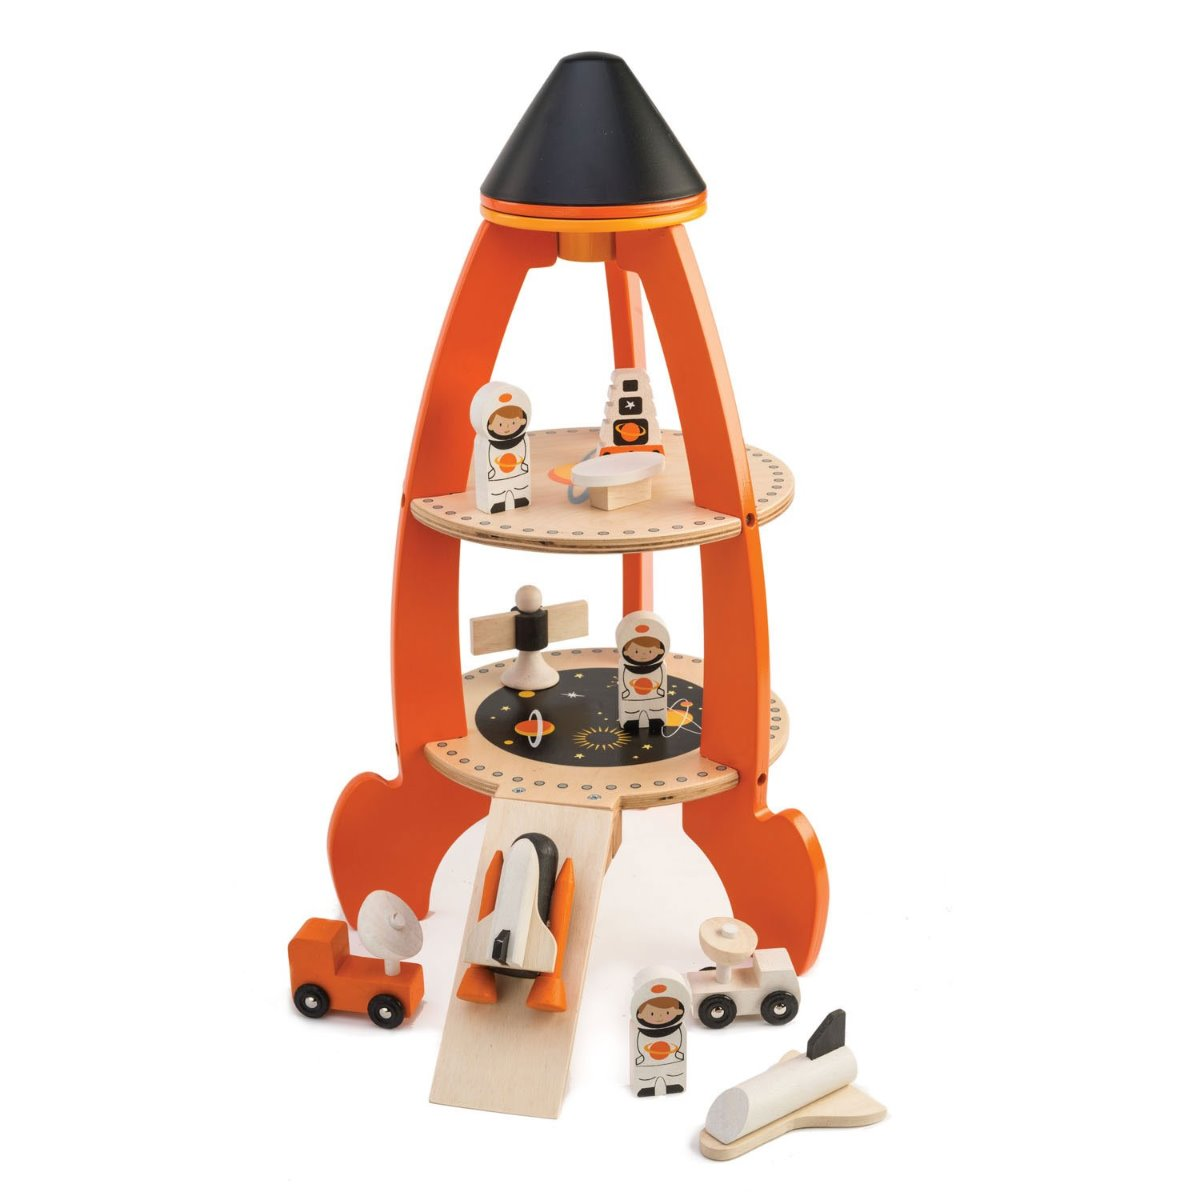 Tenderleaf Cosmic Rocket wooden toy at Little Sprout